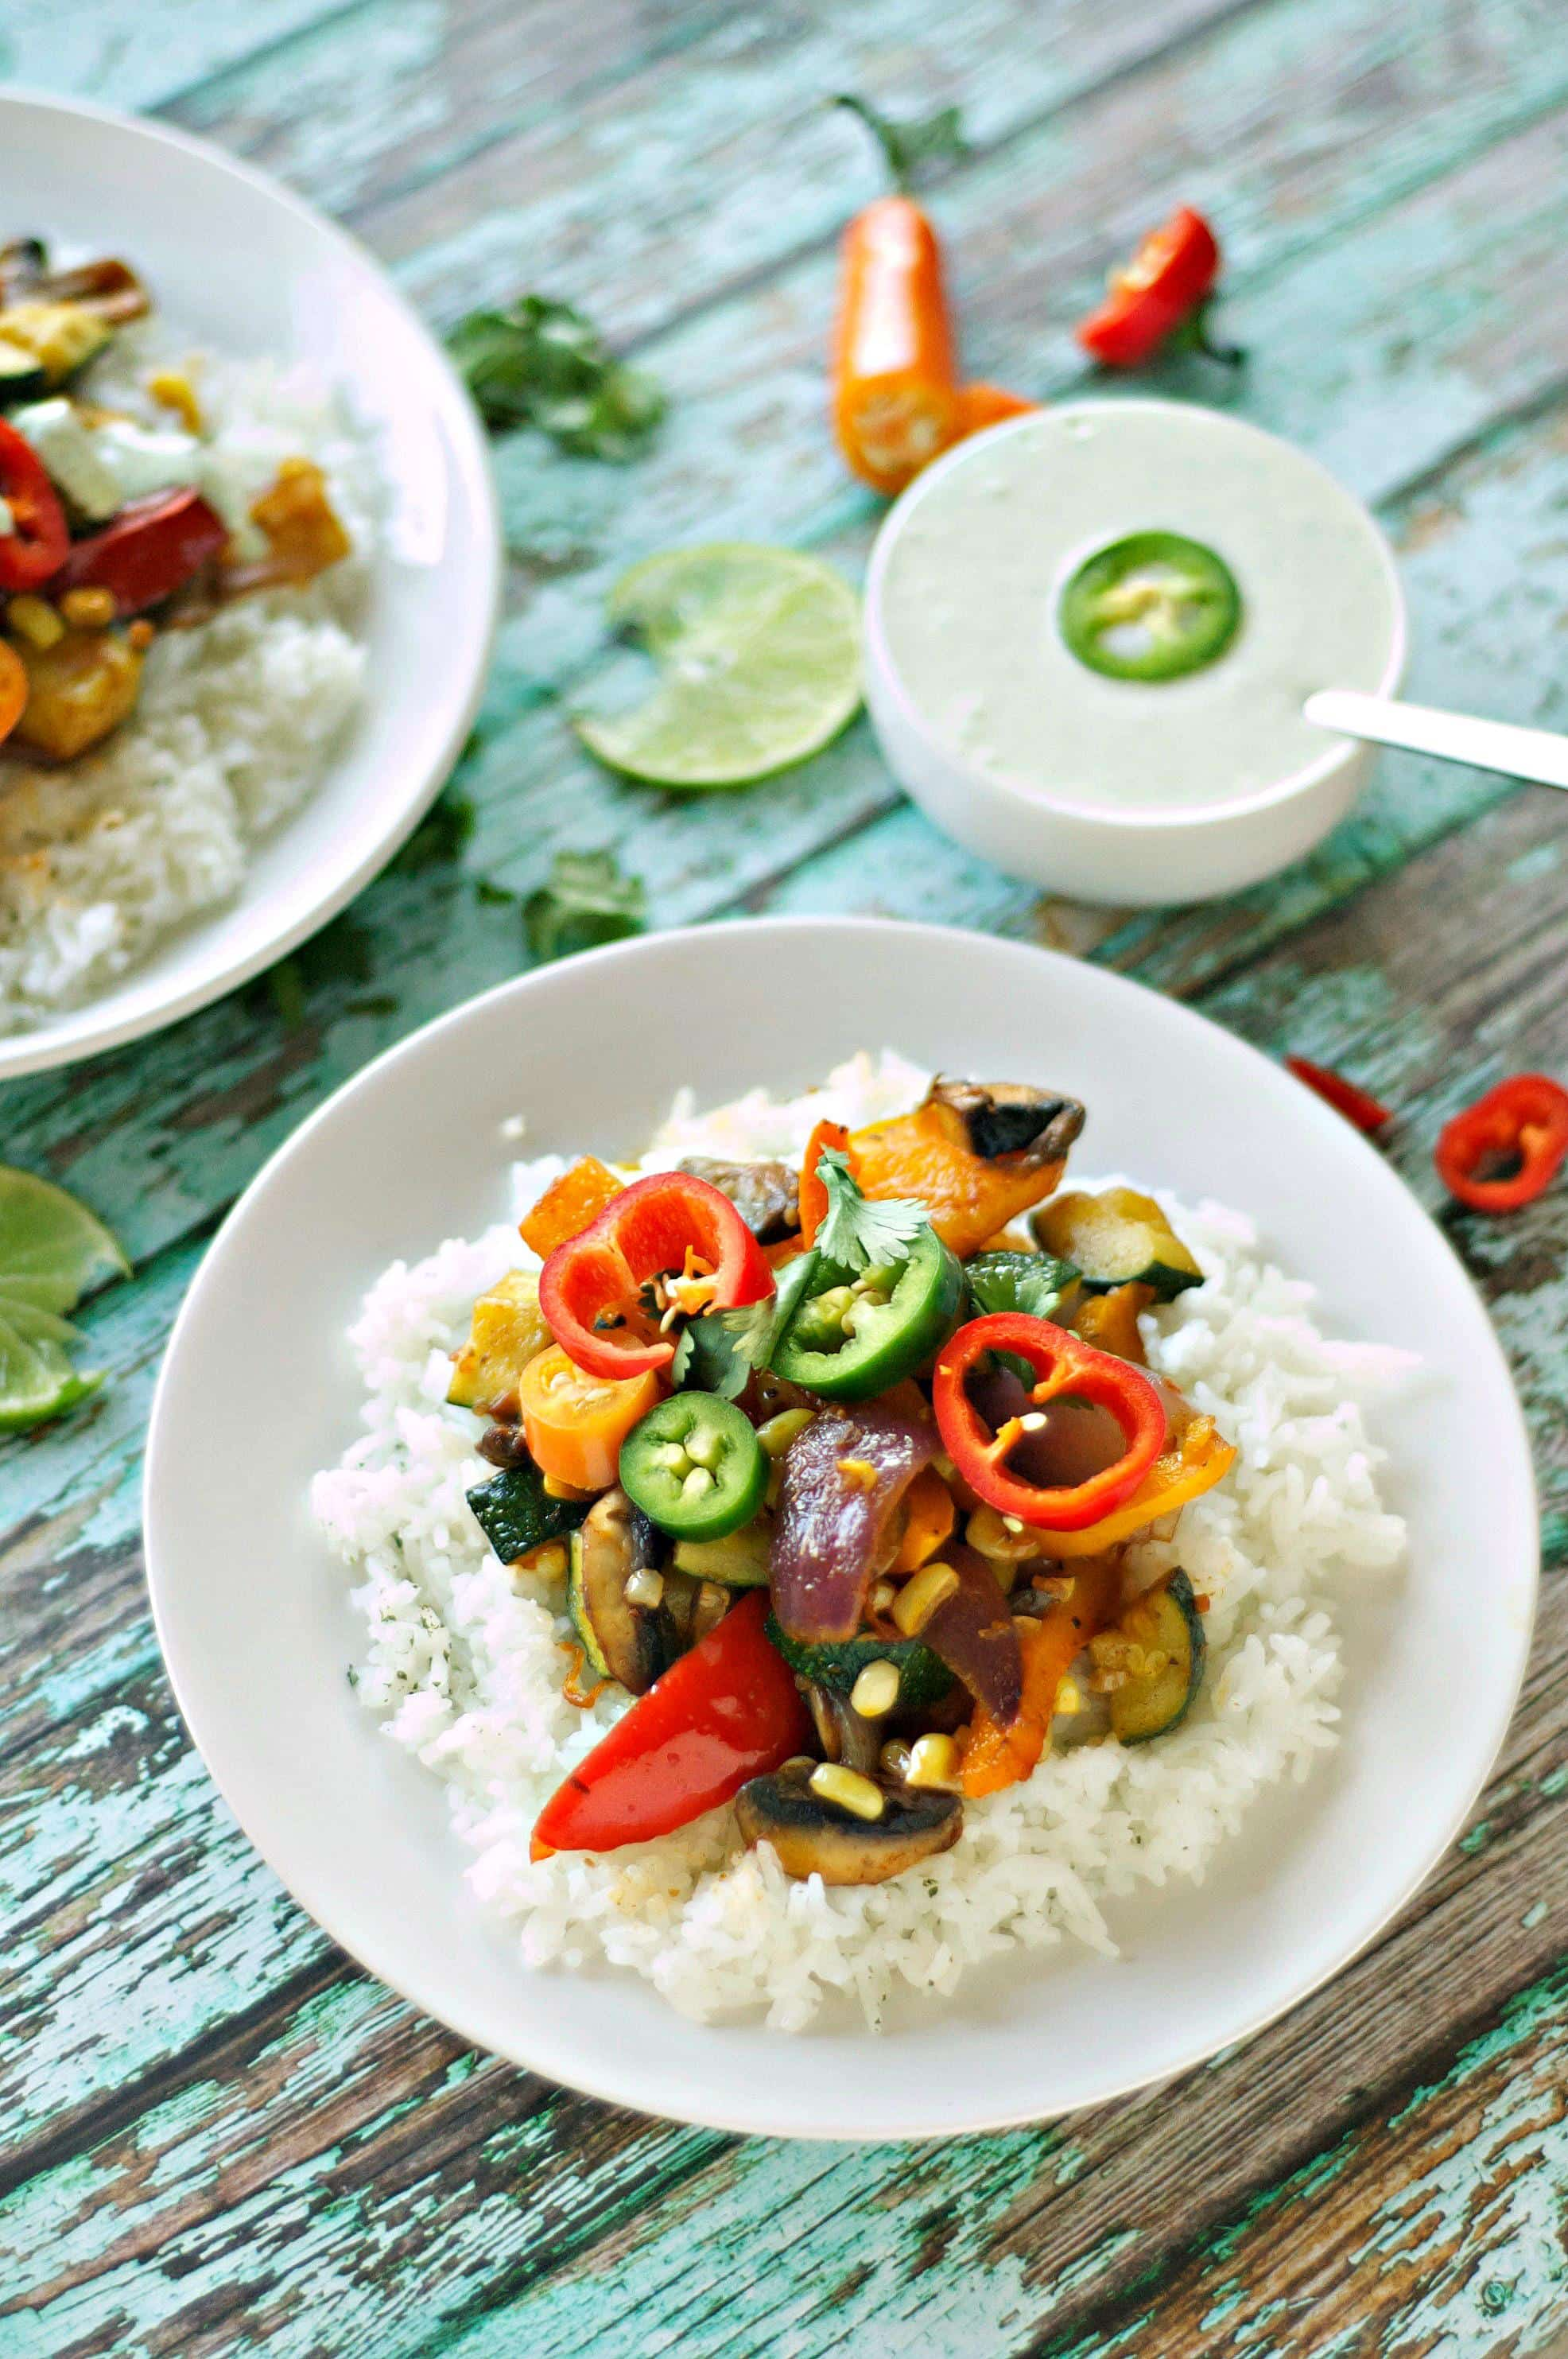 Quick Dinners in Under 30! Veggie Fajita Bowls with Zesty Lime Ranch